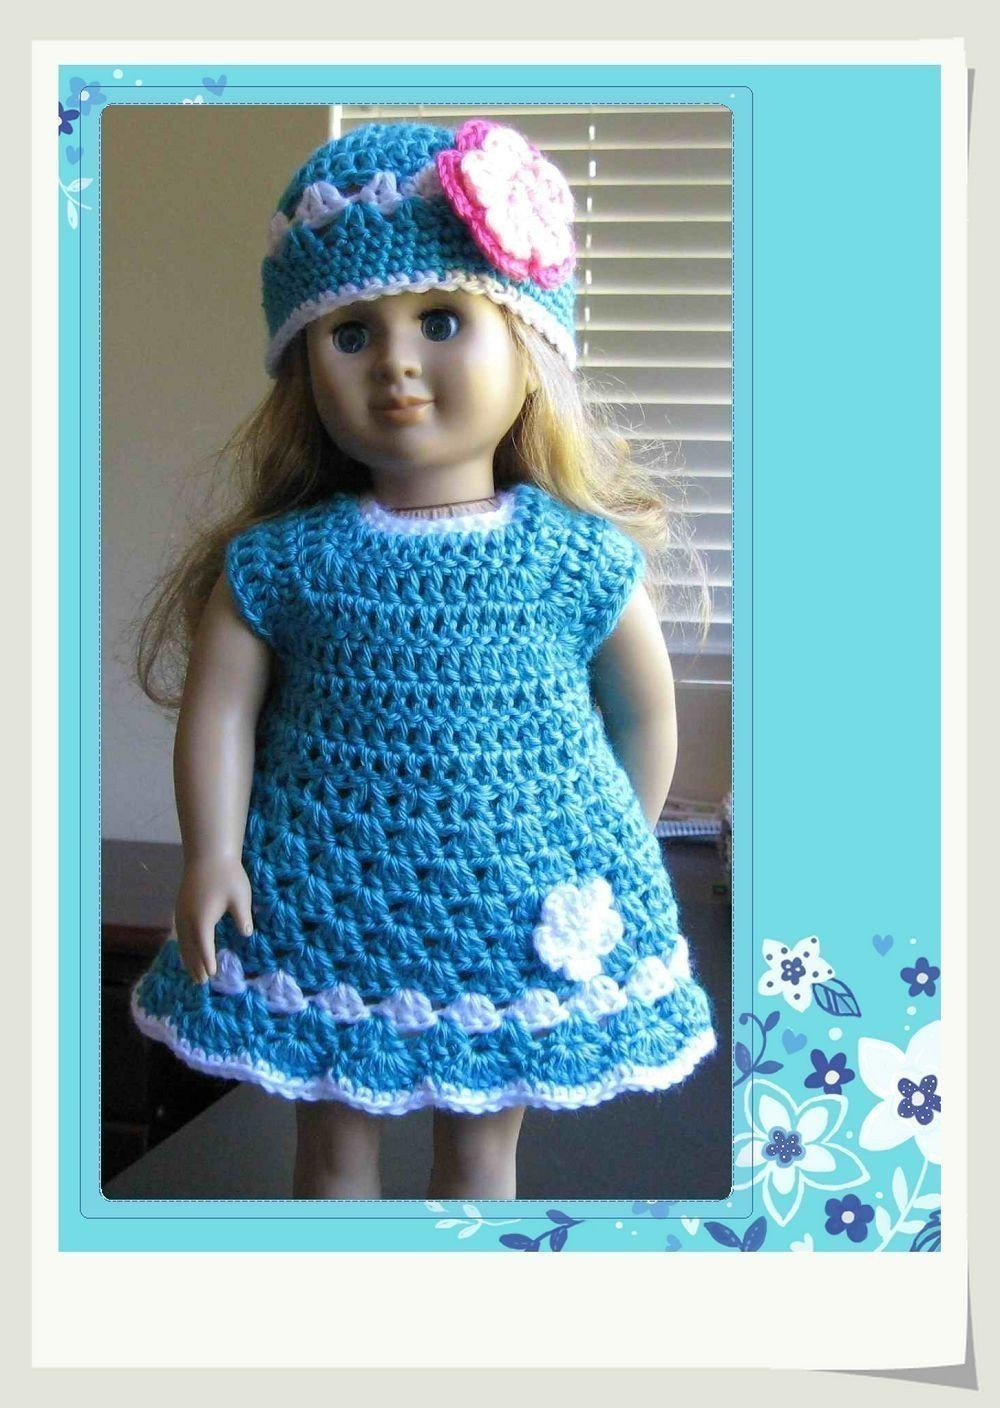 Best Of Pattern Crocheted Doll Clothes Dress for American Girl Gotz Free American Girl Doll Clothes Patterns Of Lovely 49 Models Free American Girl Doll Clothes Patterns